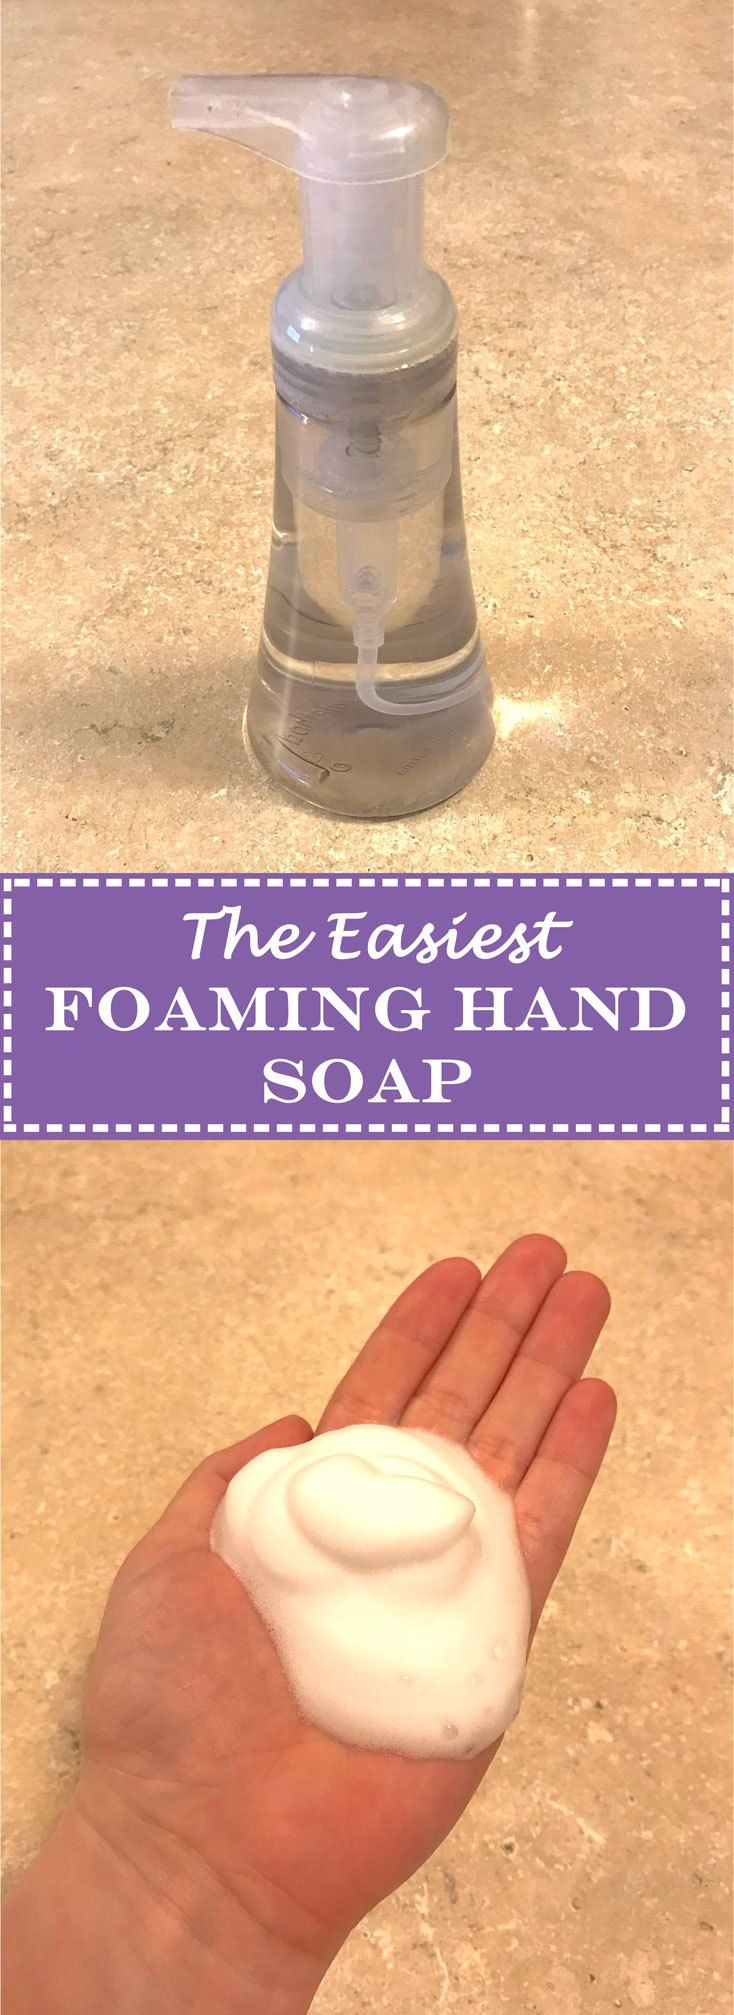 The Easiest Foaming Hand Soap!  -> stretch your dollar and make a regular bottle of hand soap last way longer!   www.cookcleancreate.co #foamingsoap #foam #soap #diy #diyclean #clean #easiestfoamsoap #diyish #cookcleancreate